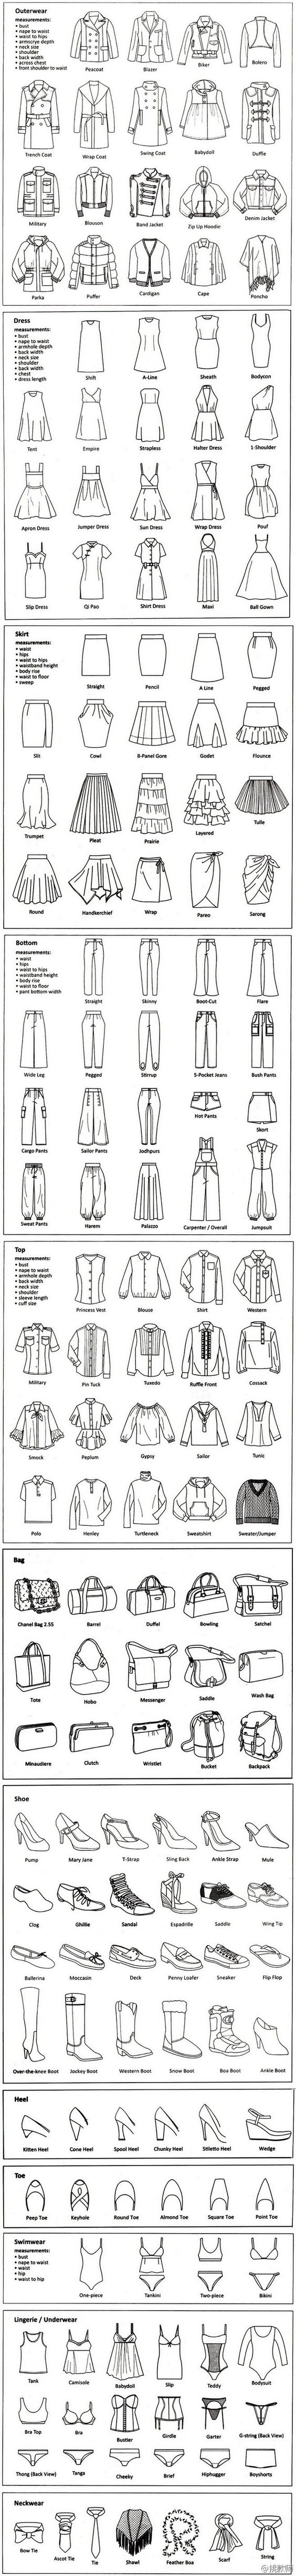 Garment fashion terminology: